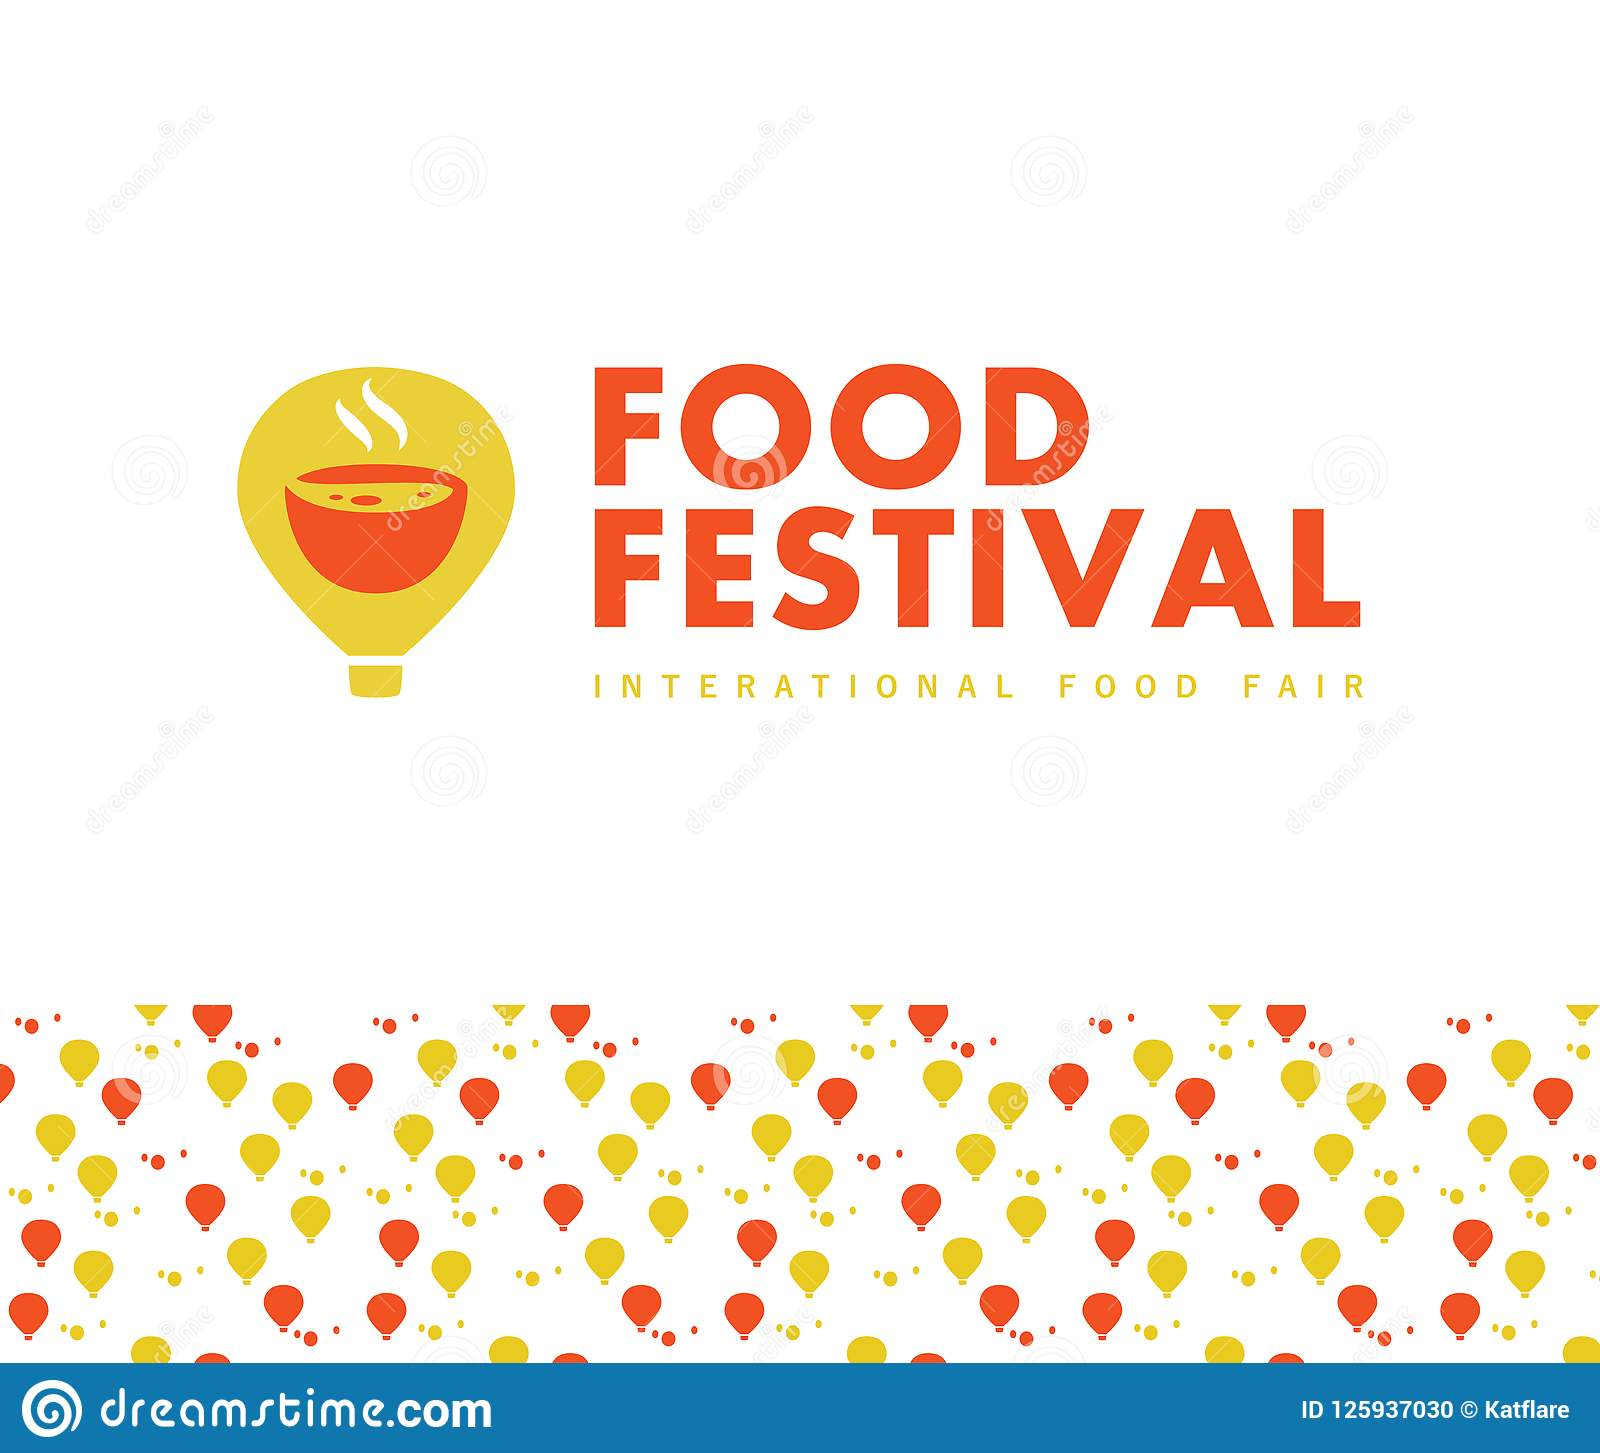 vector food festival logo template in different color variants